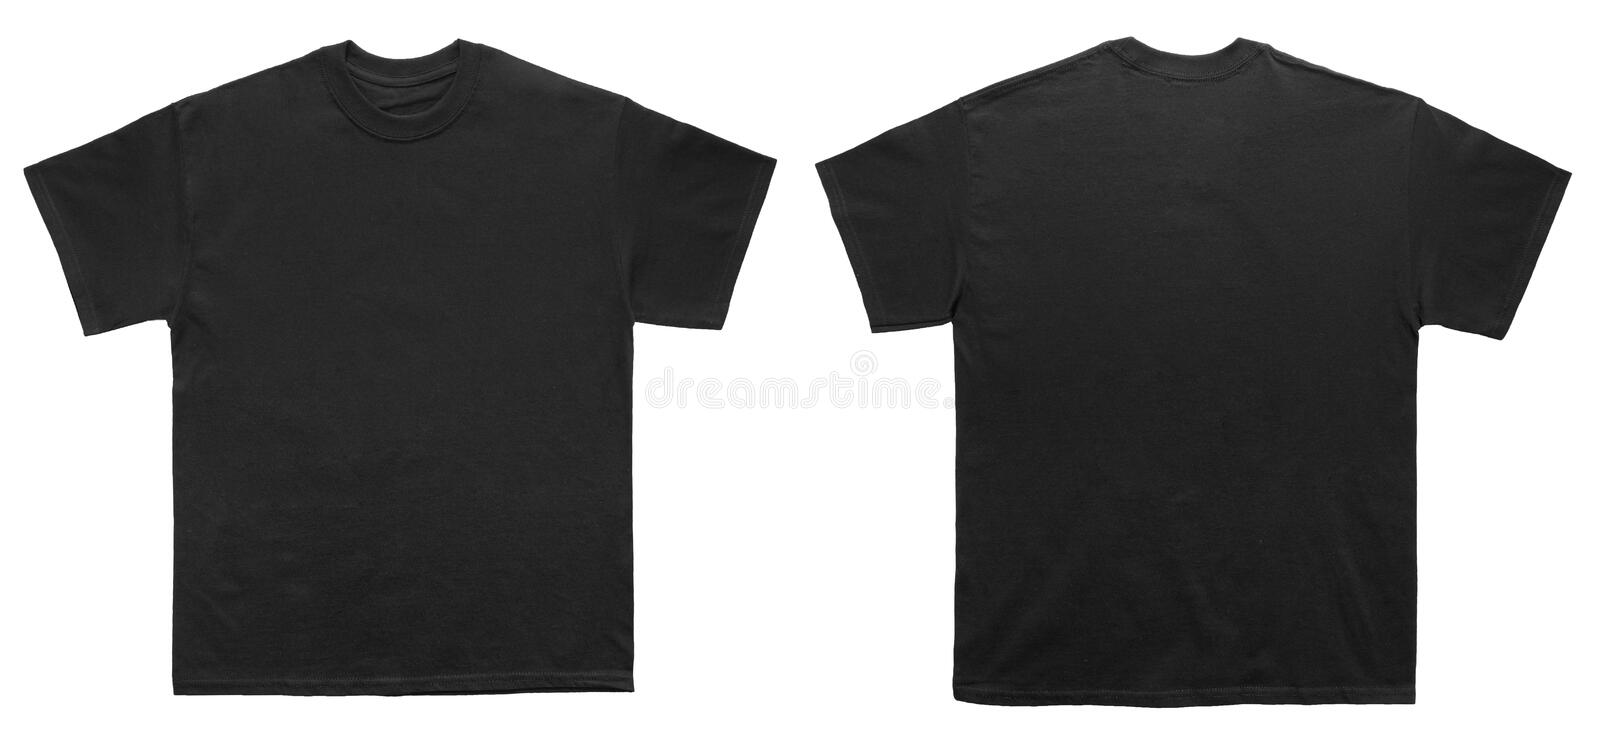 Blank T Shirt color black template front and back view royalty free stock photo